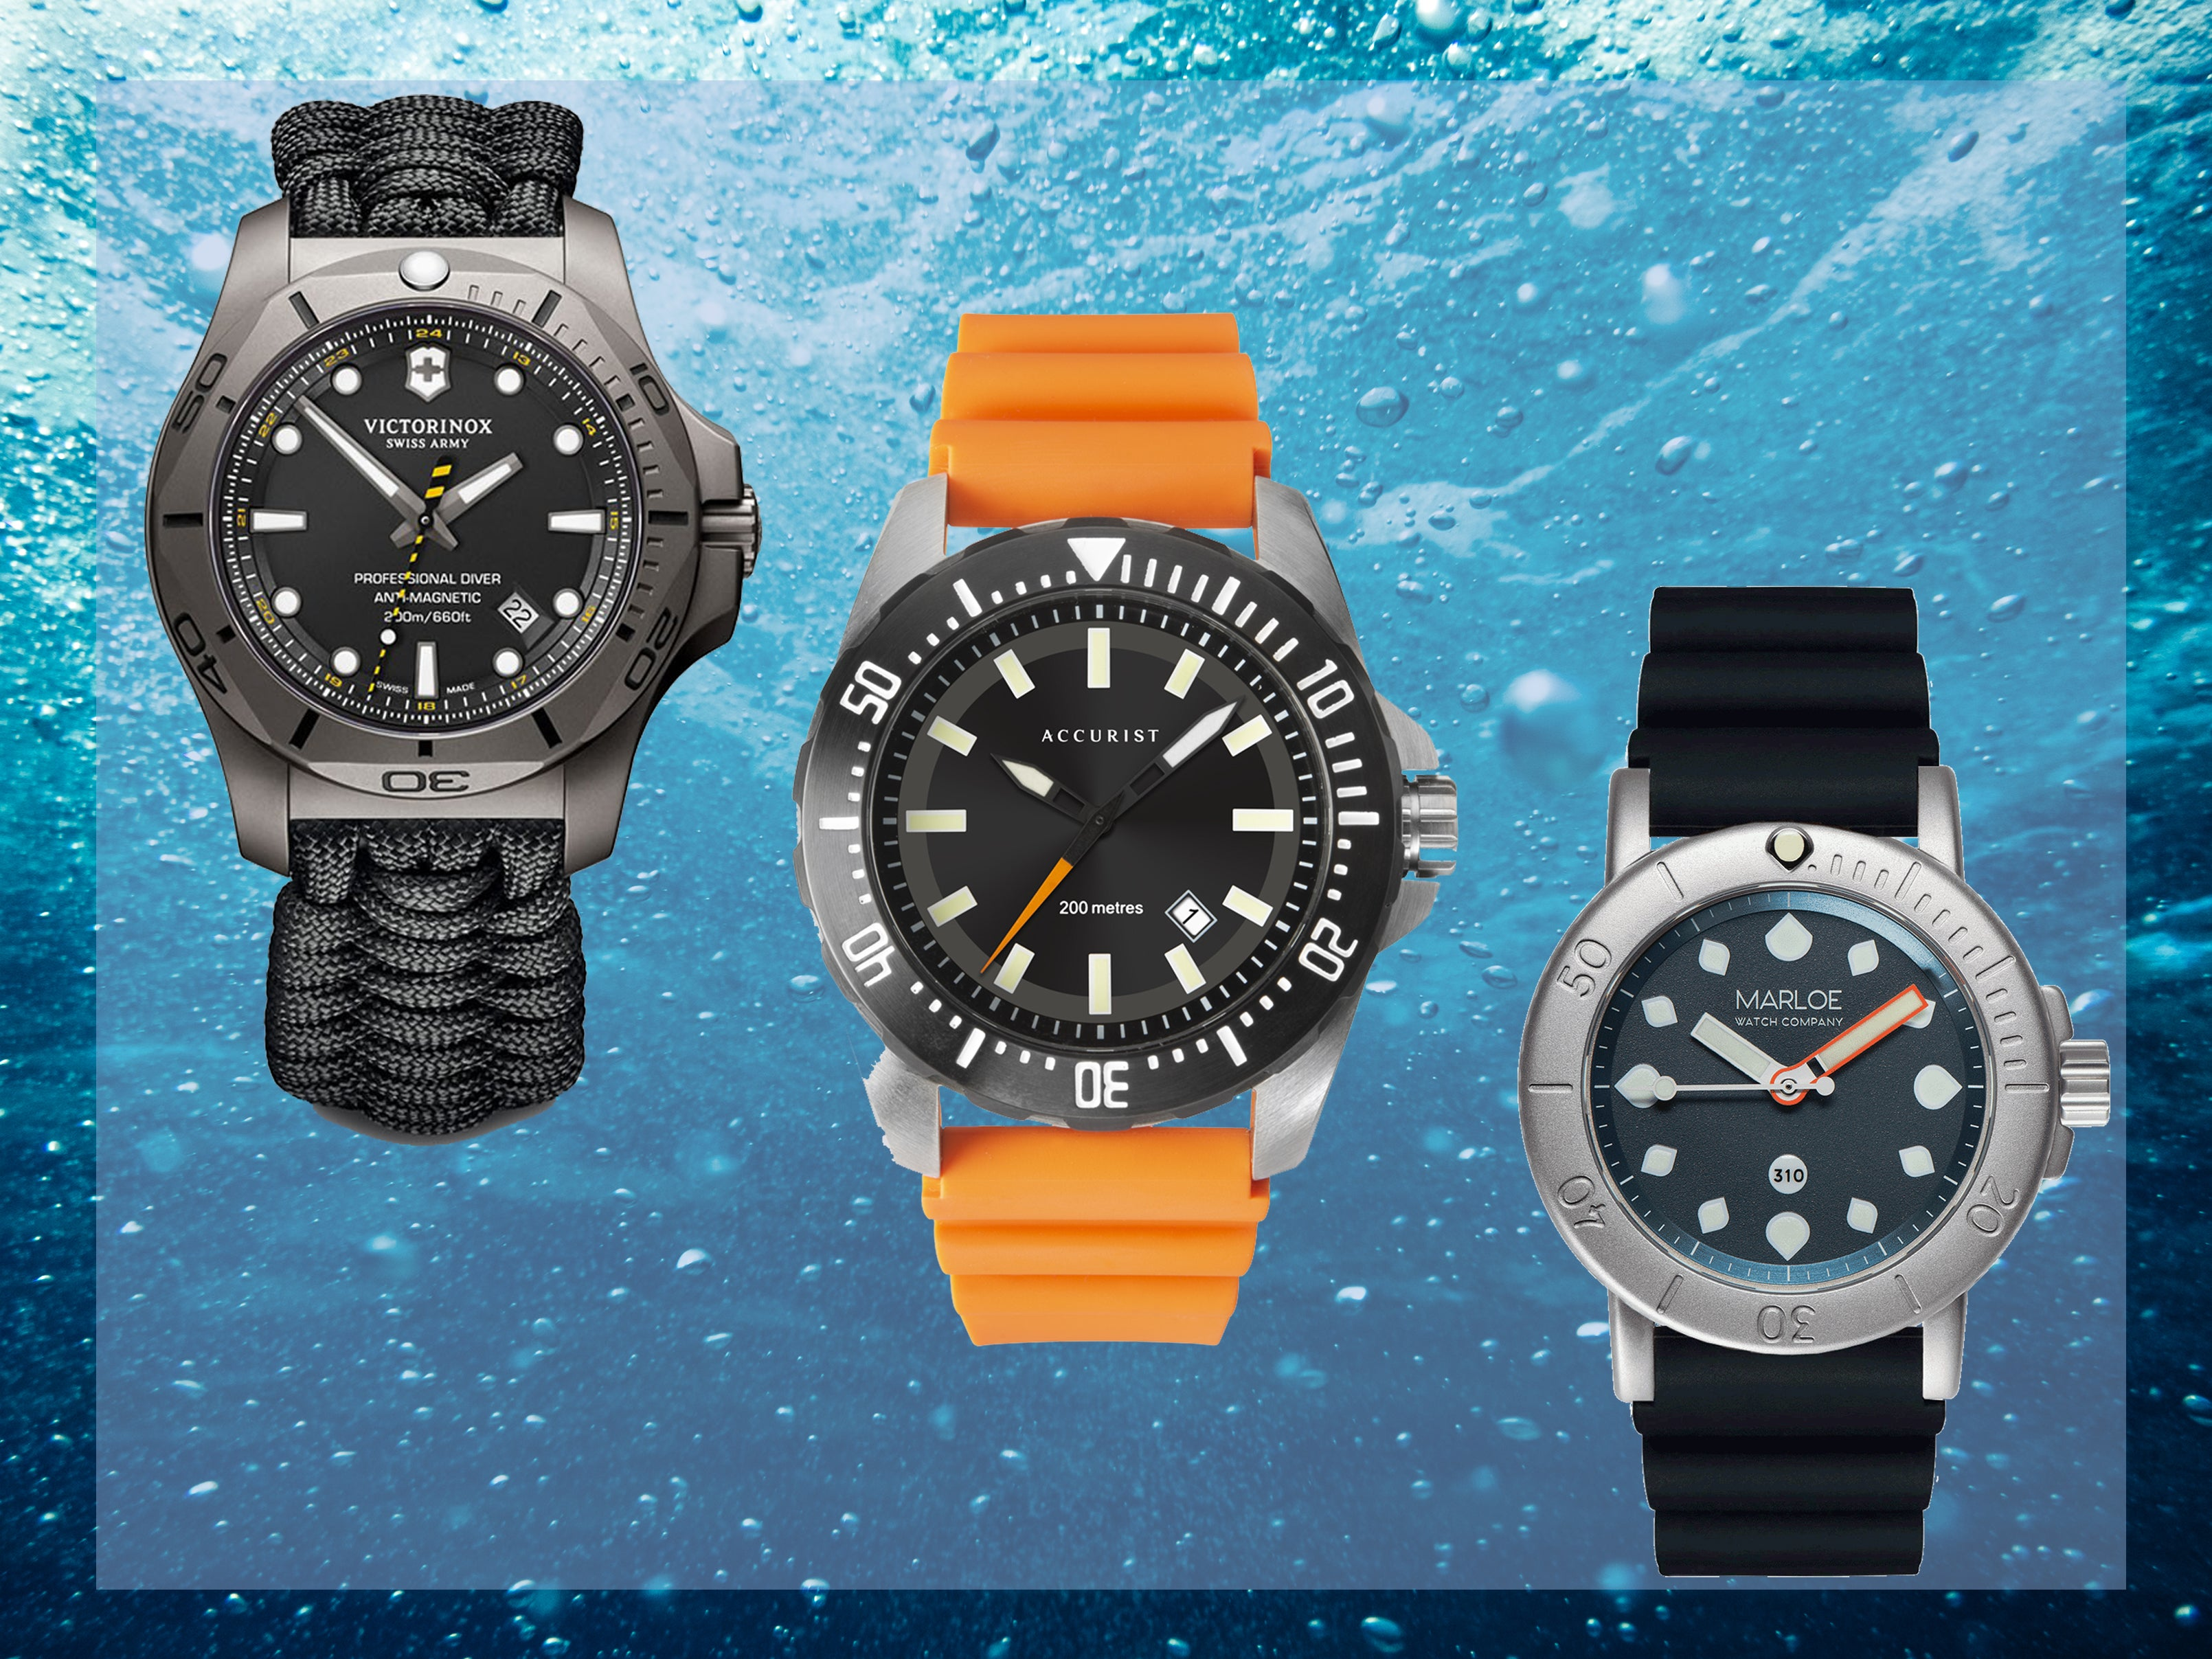 Best waterproof watch 2020 for swimming, surfing and diving